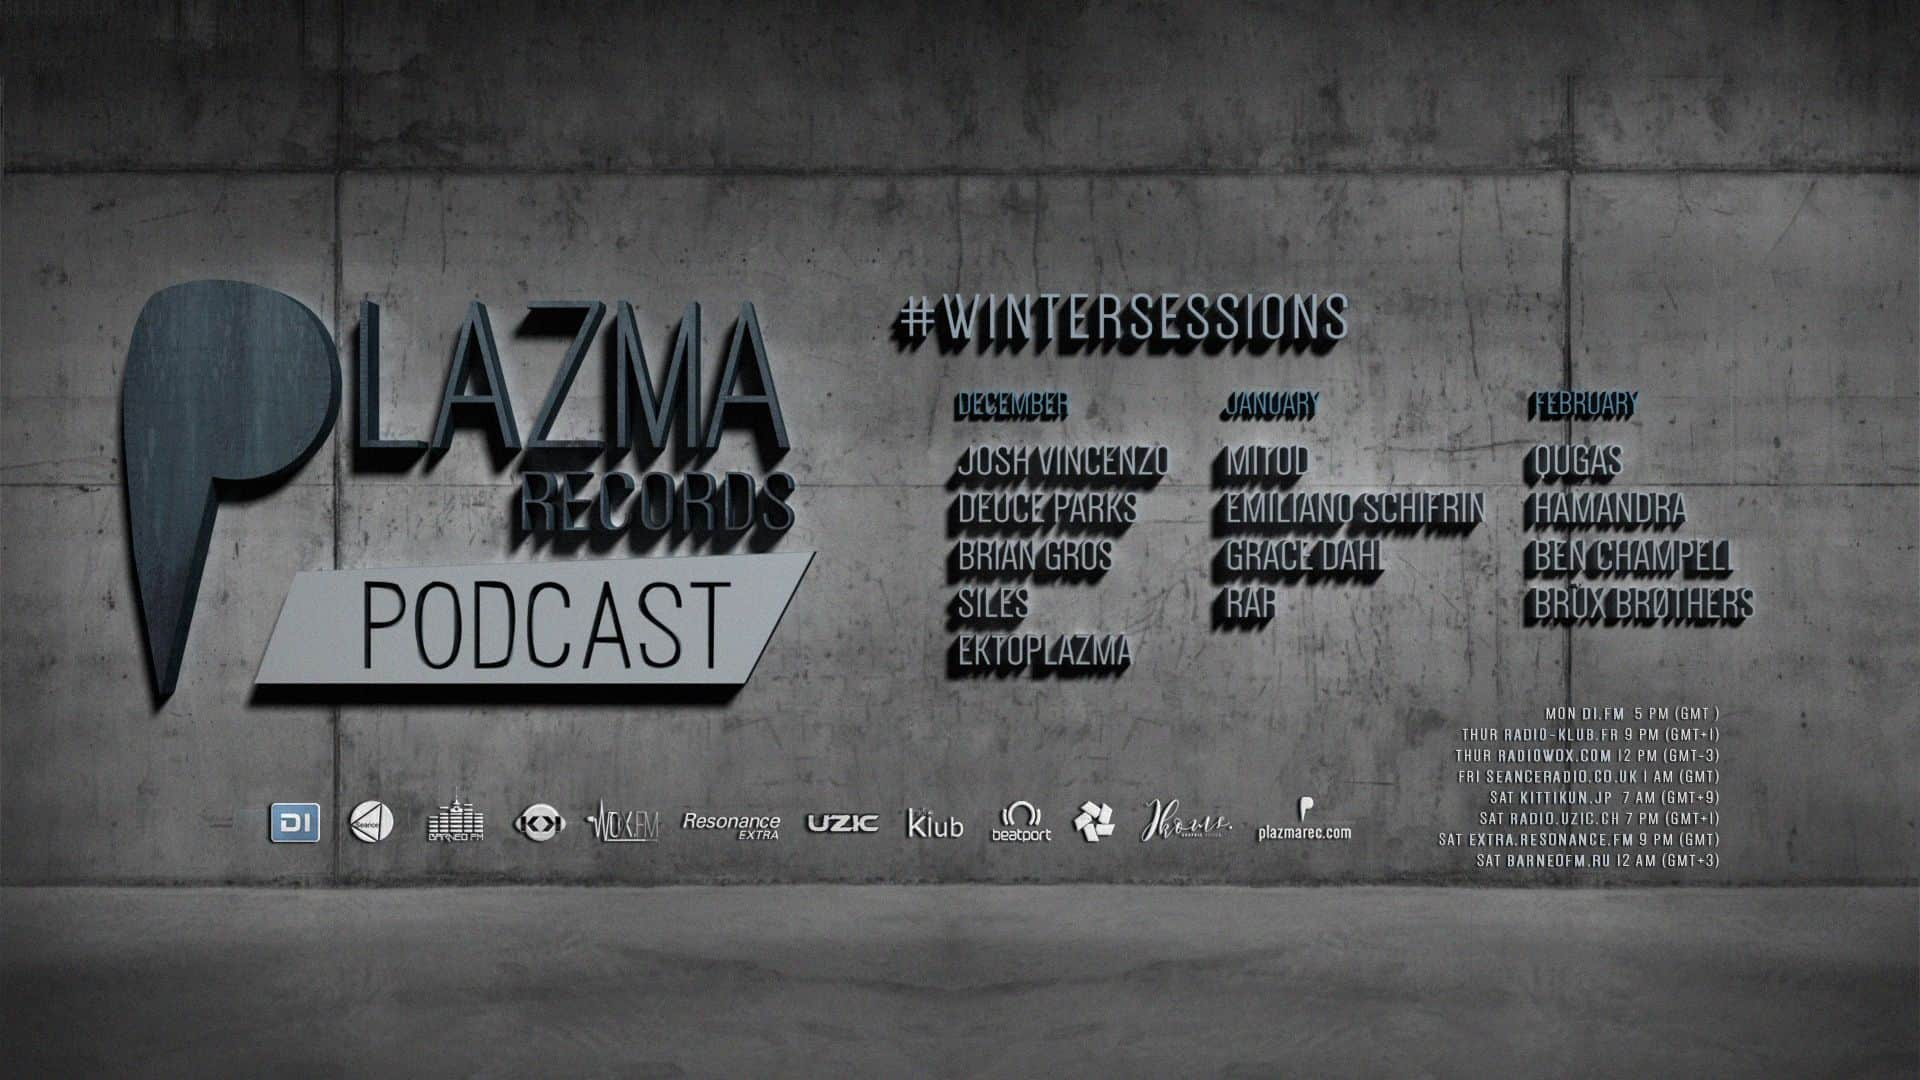 Plazma Records Podcast | Winter Sessions'18-19